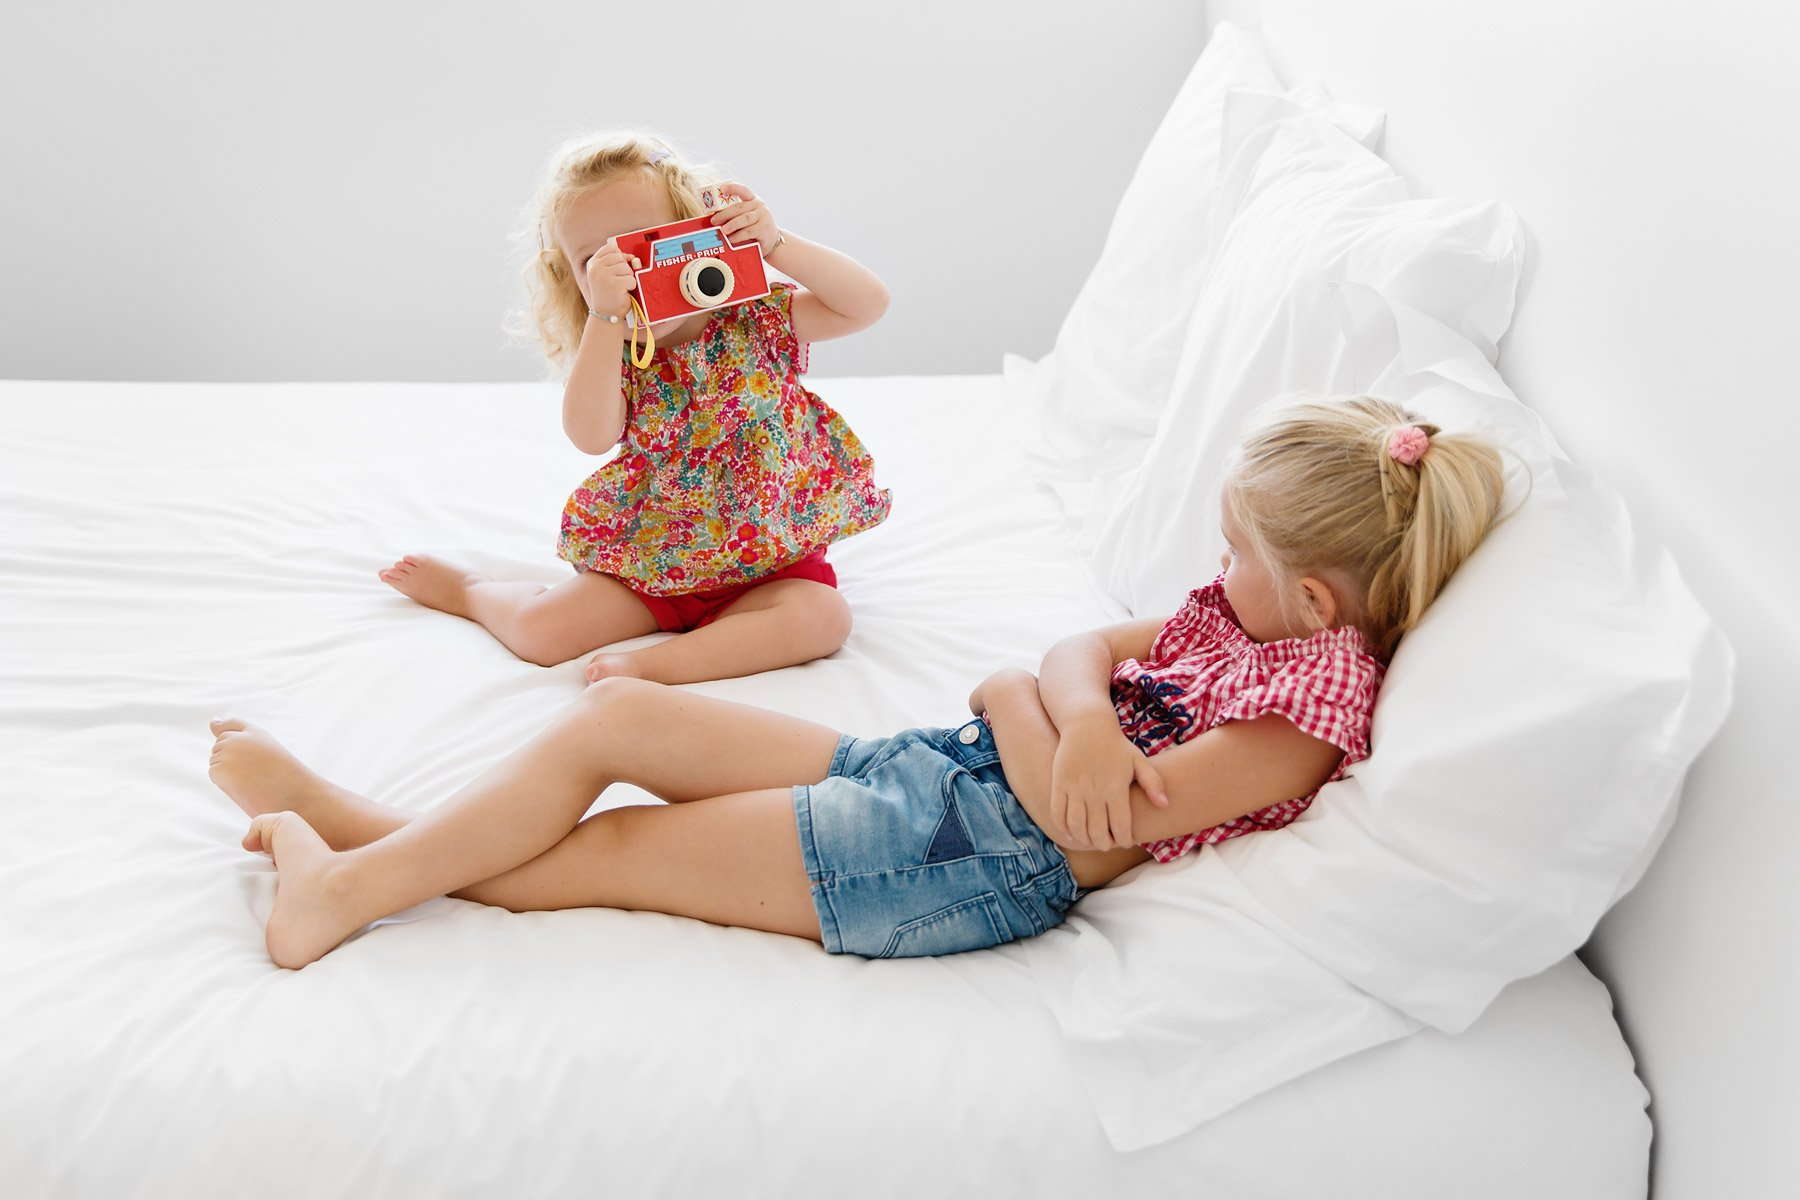 kids-on-bed-playing-with-toy-camera-by-lisa-tichane